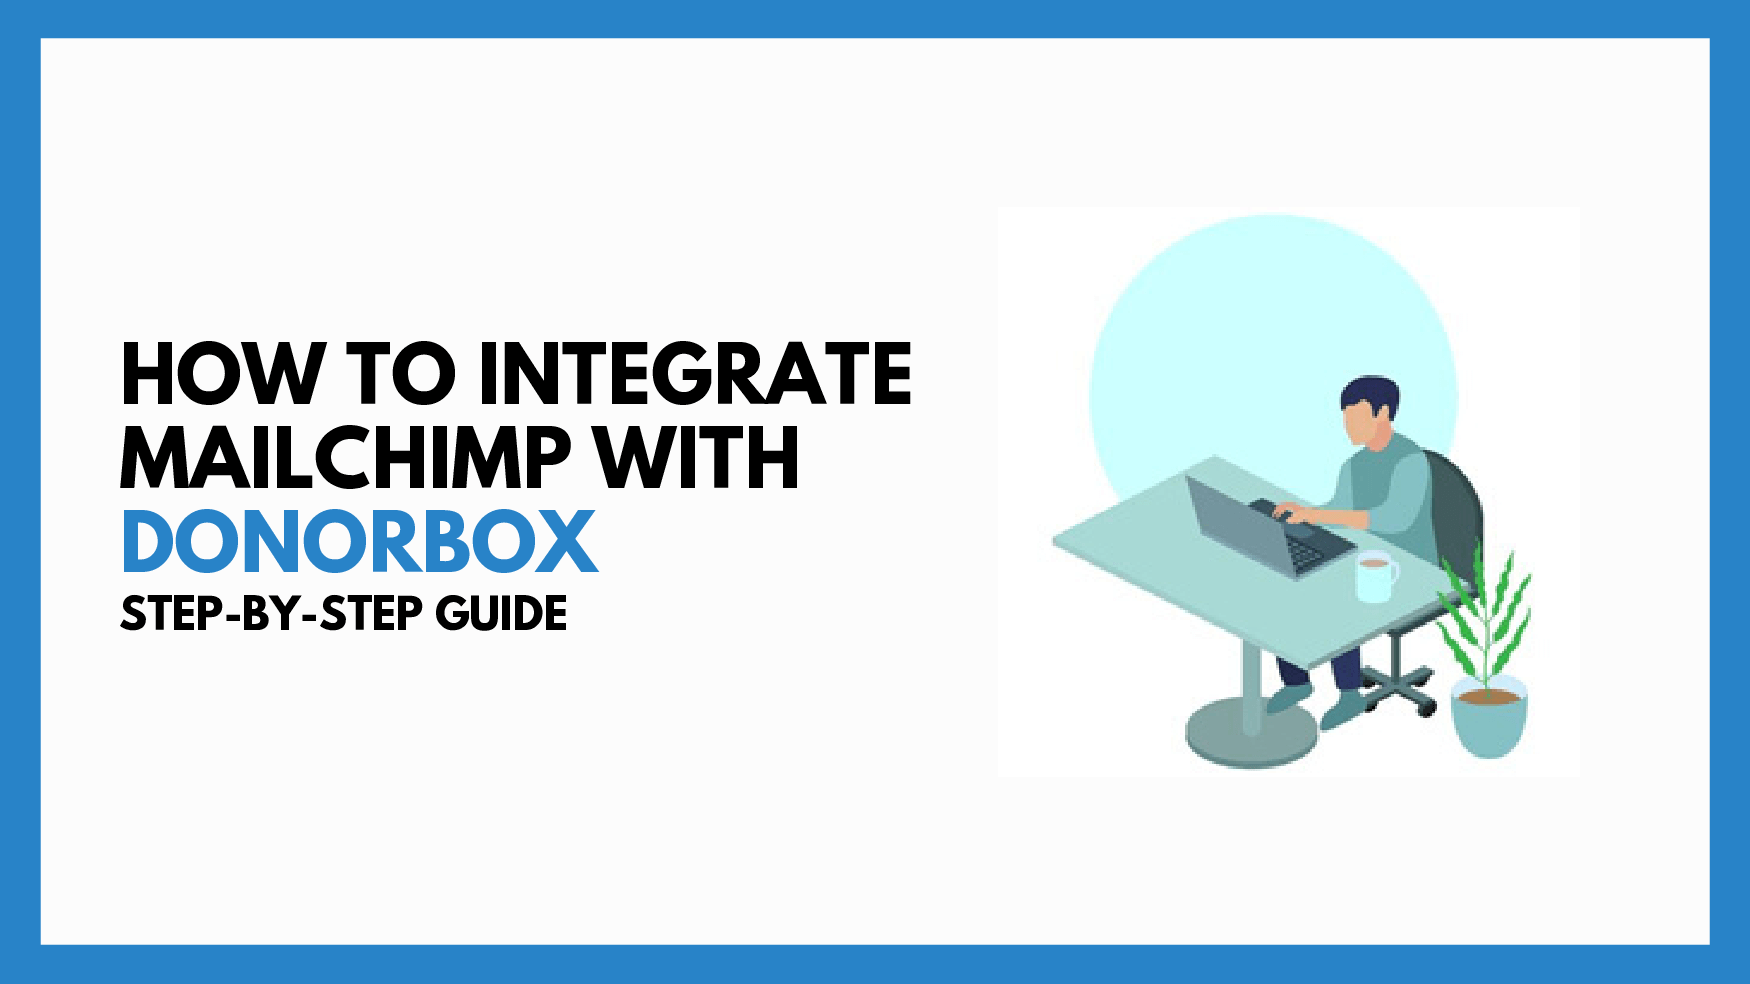 How To Integrate Mailchimp with Donorbox   Step-by-Step Guide